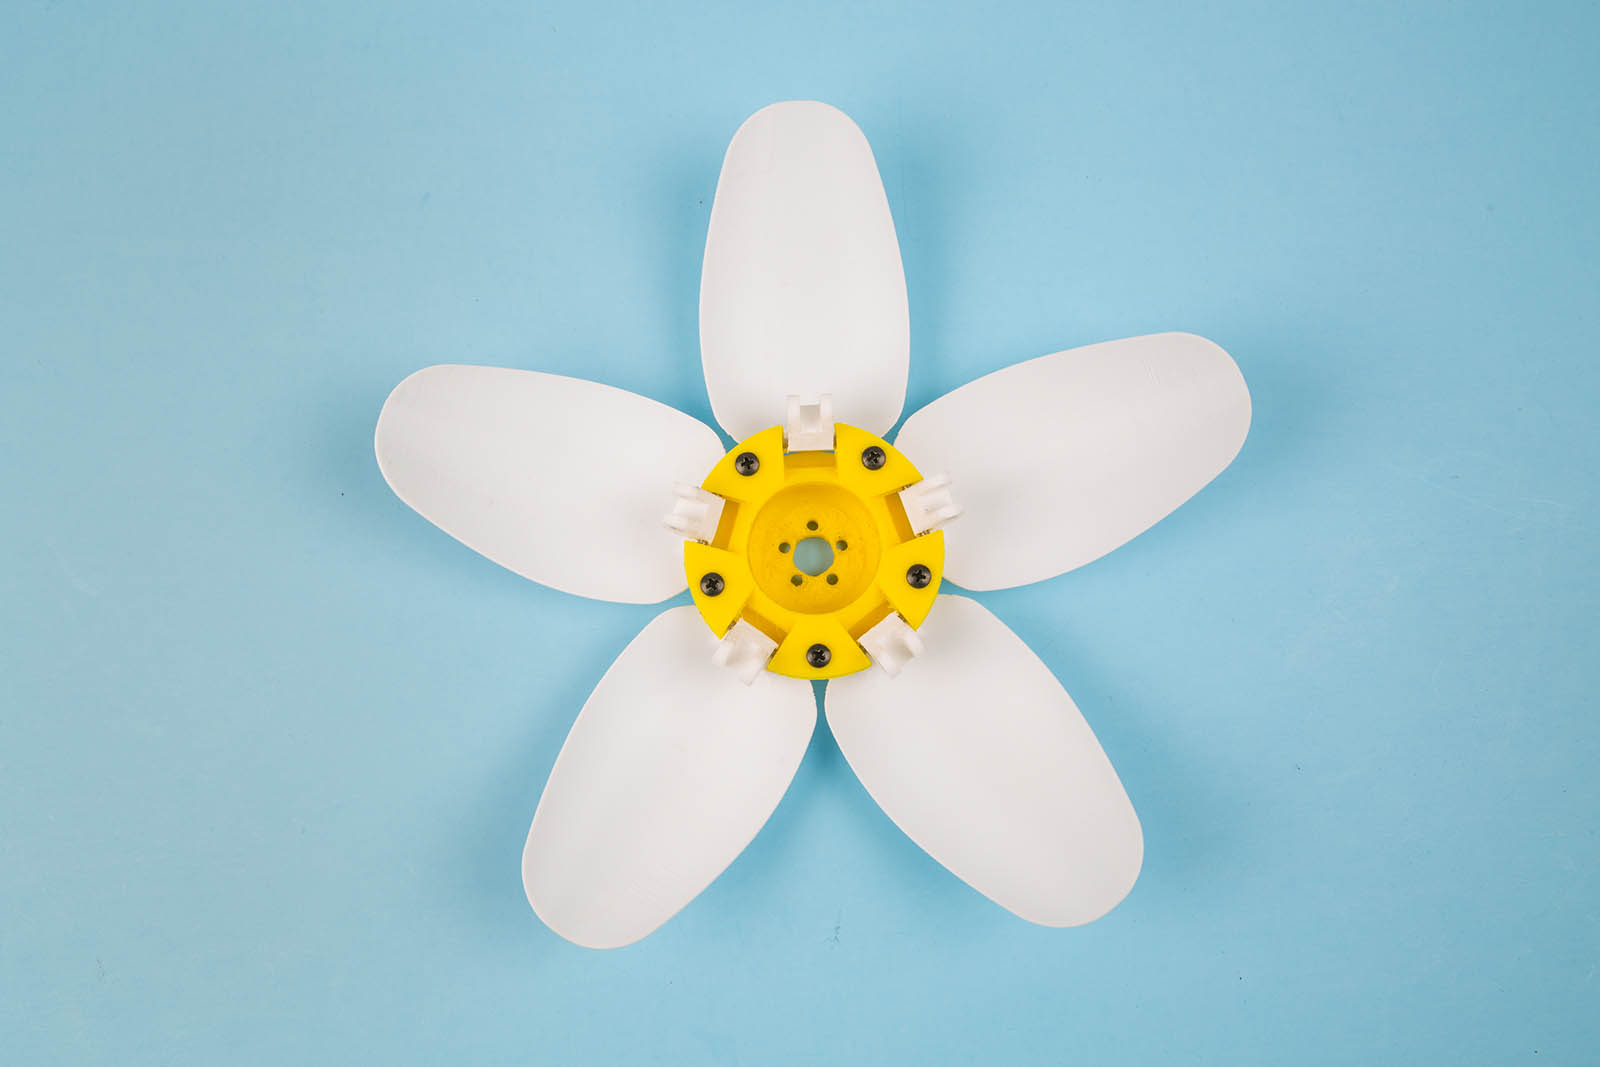 3d print this blooming flower night light make